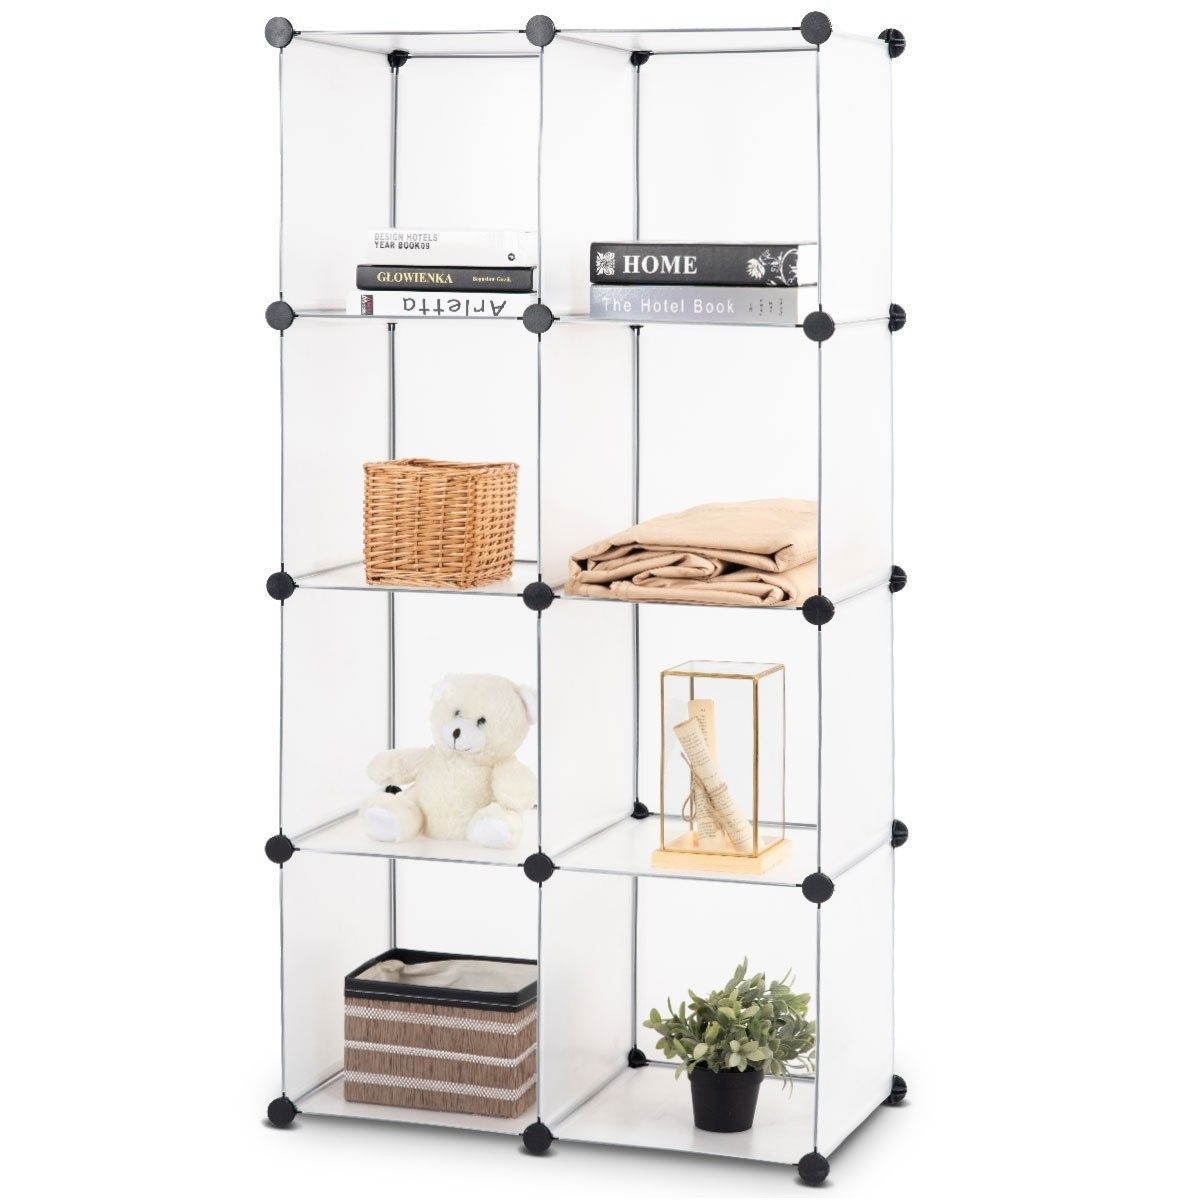 Diy cubes portable closet storage organizer diy cubes portable